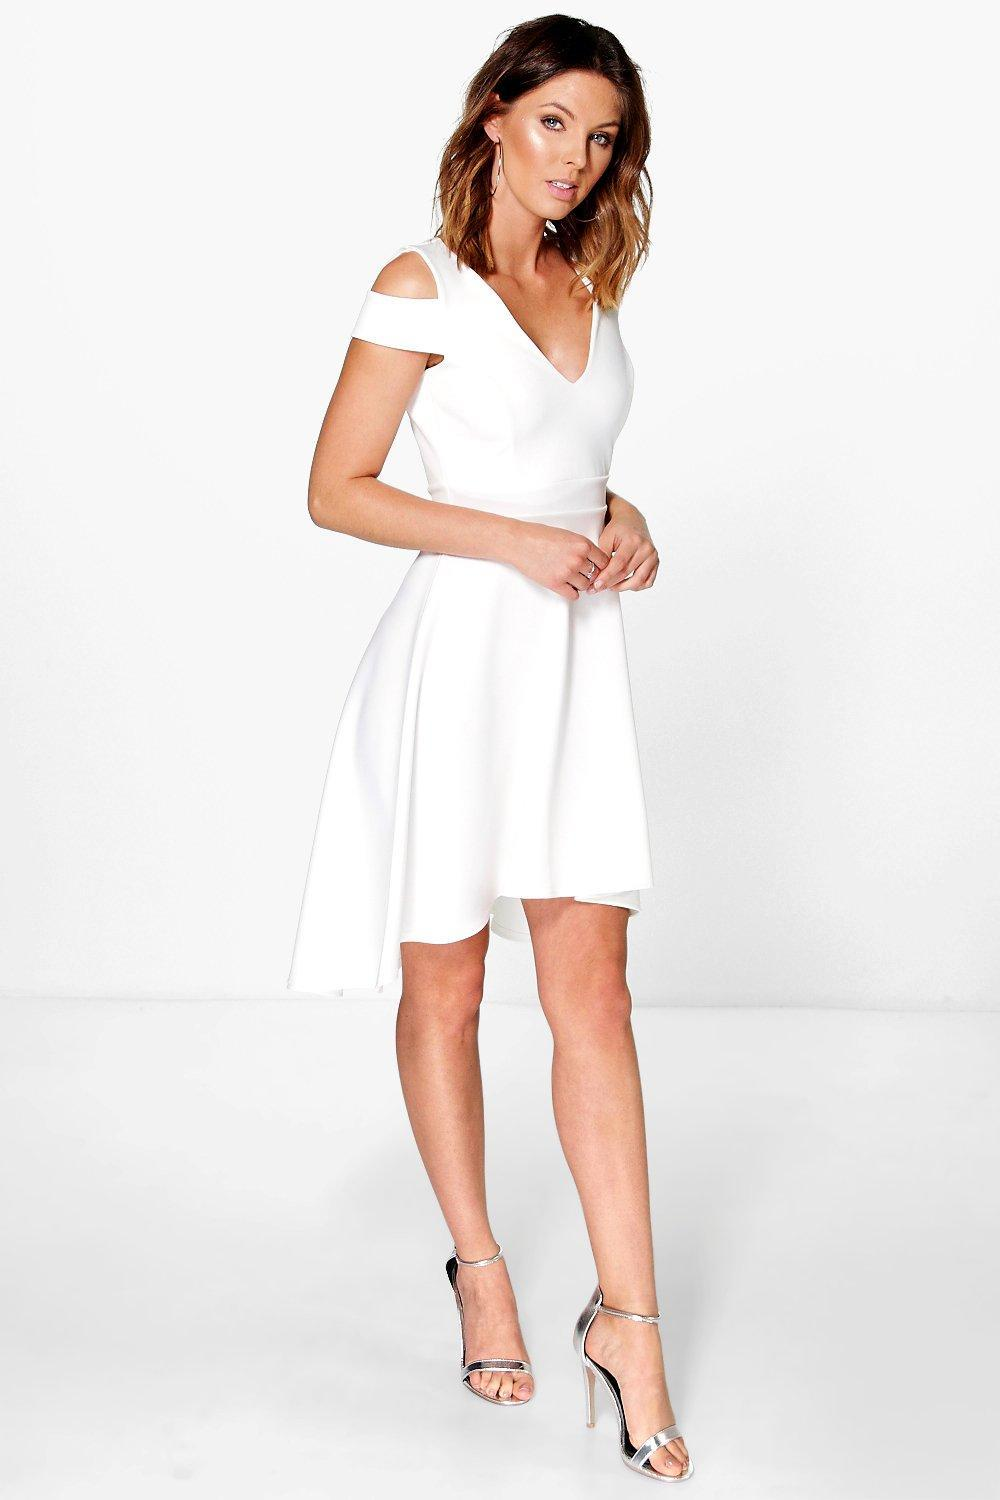 Lyst - Boohoo Bardot Plunge High Low Skater Dress in Natural b09ccd15a